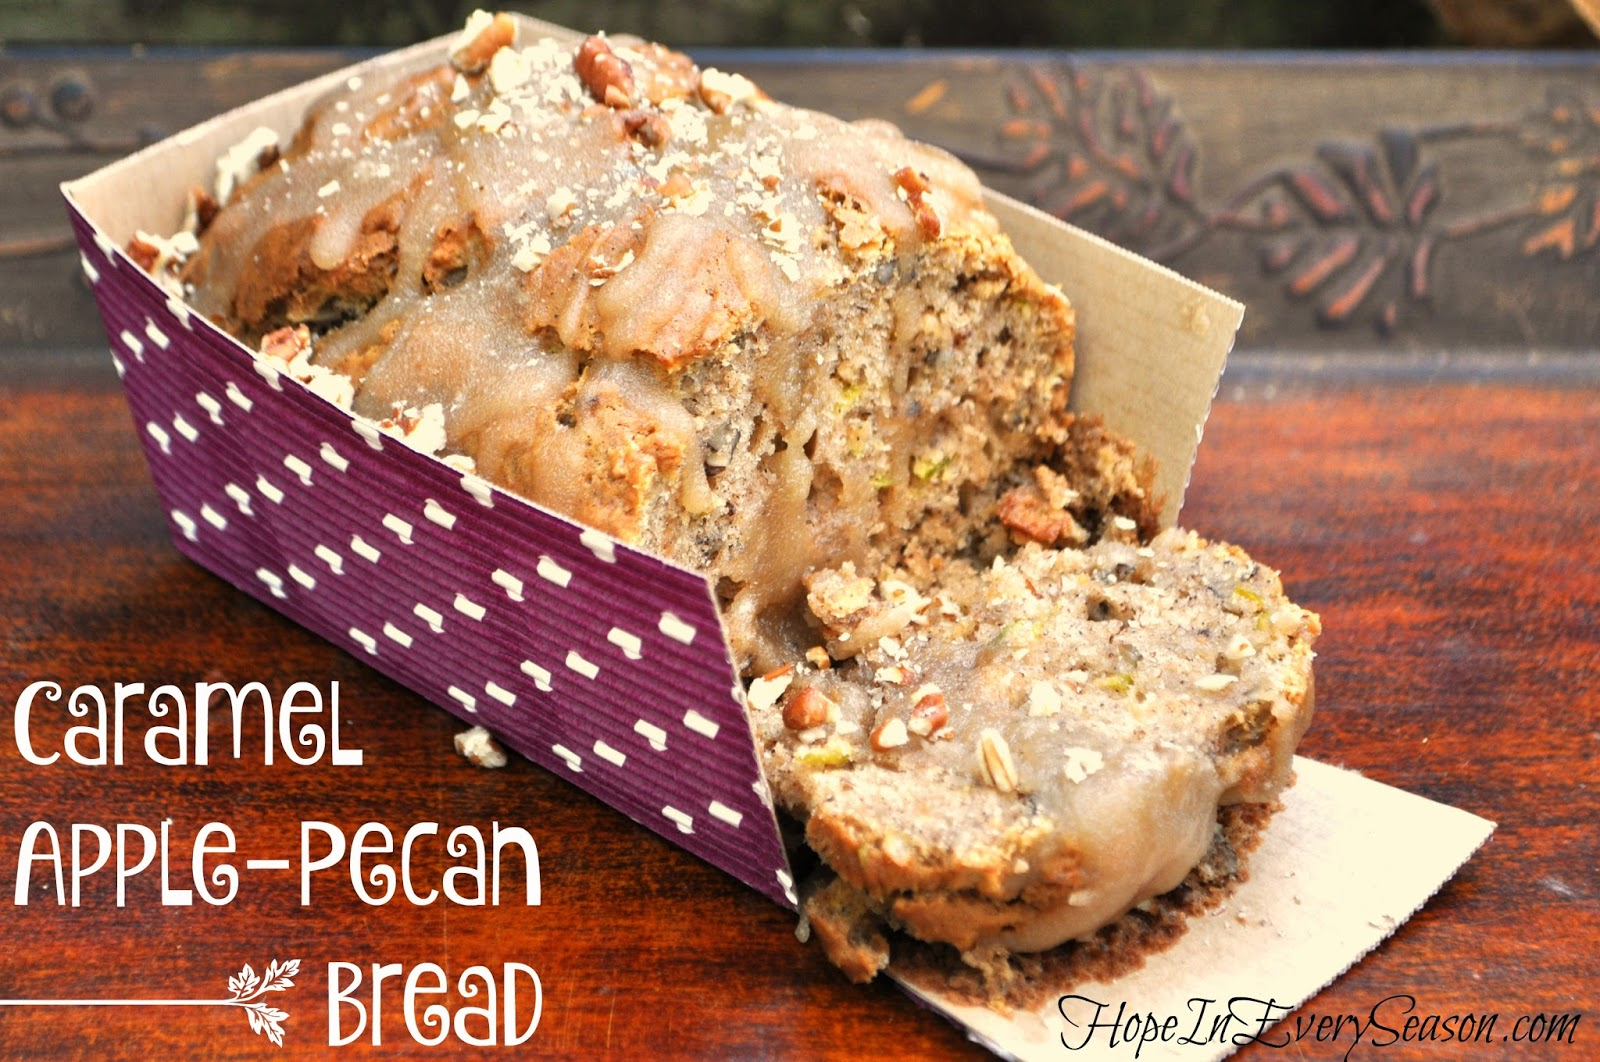 Caramel Apple Pecan Bread Recipe